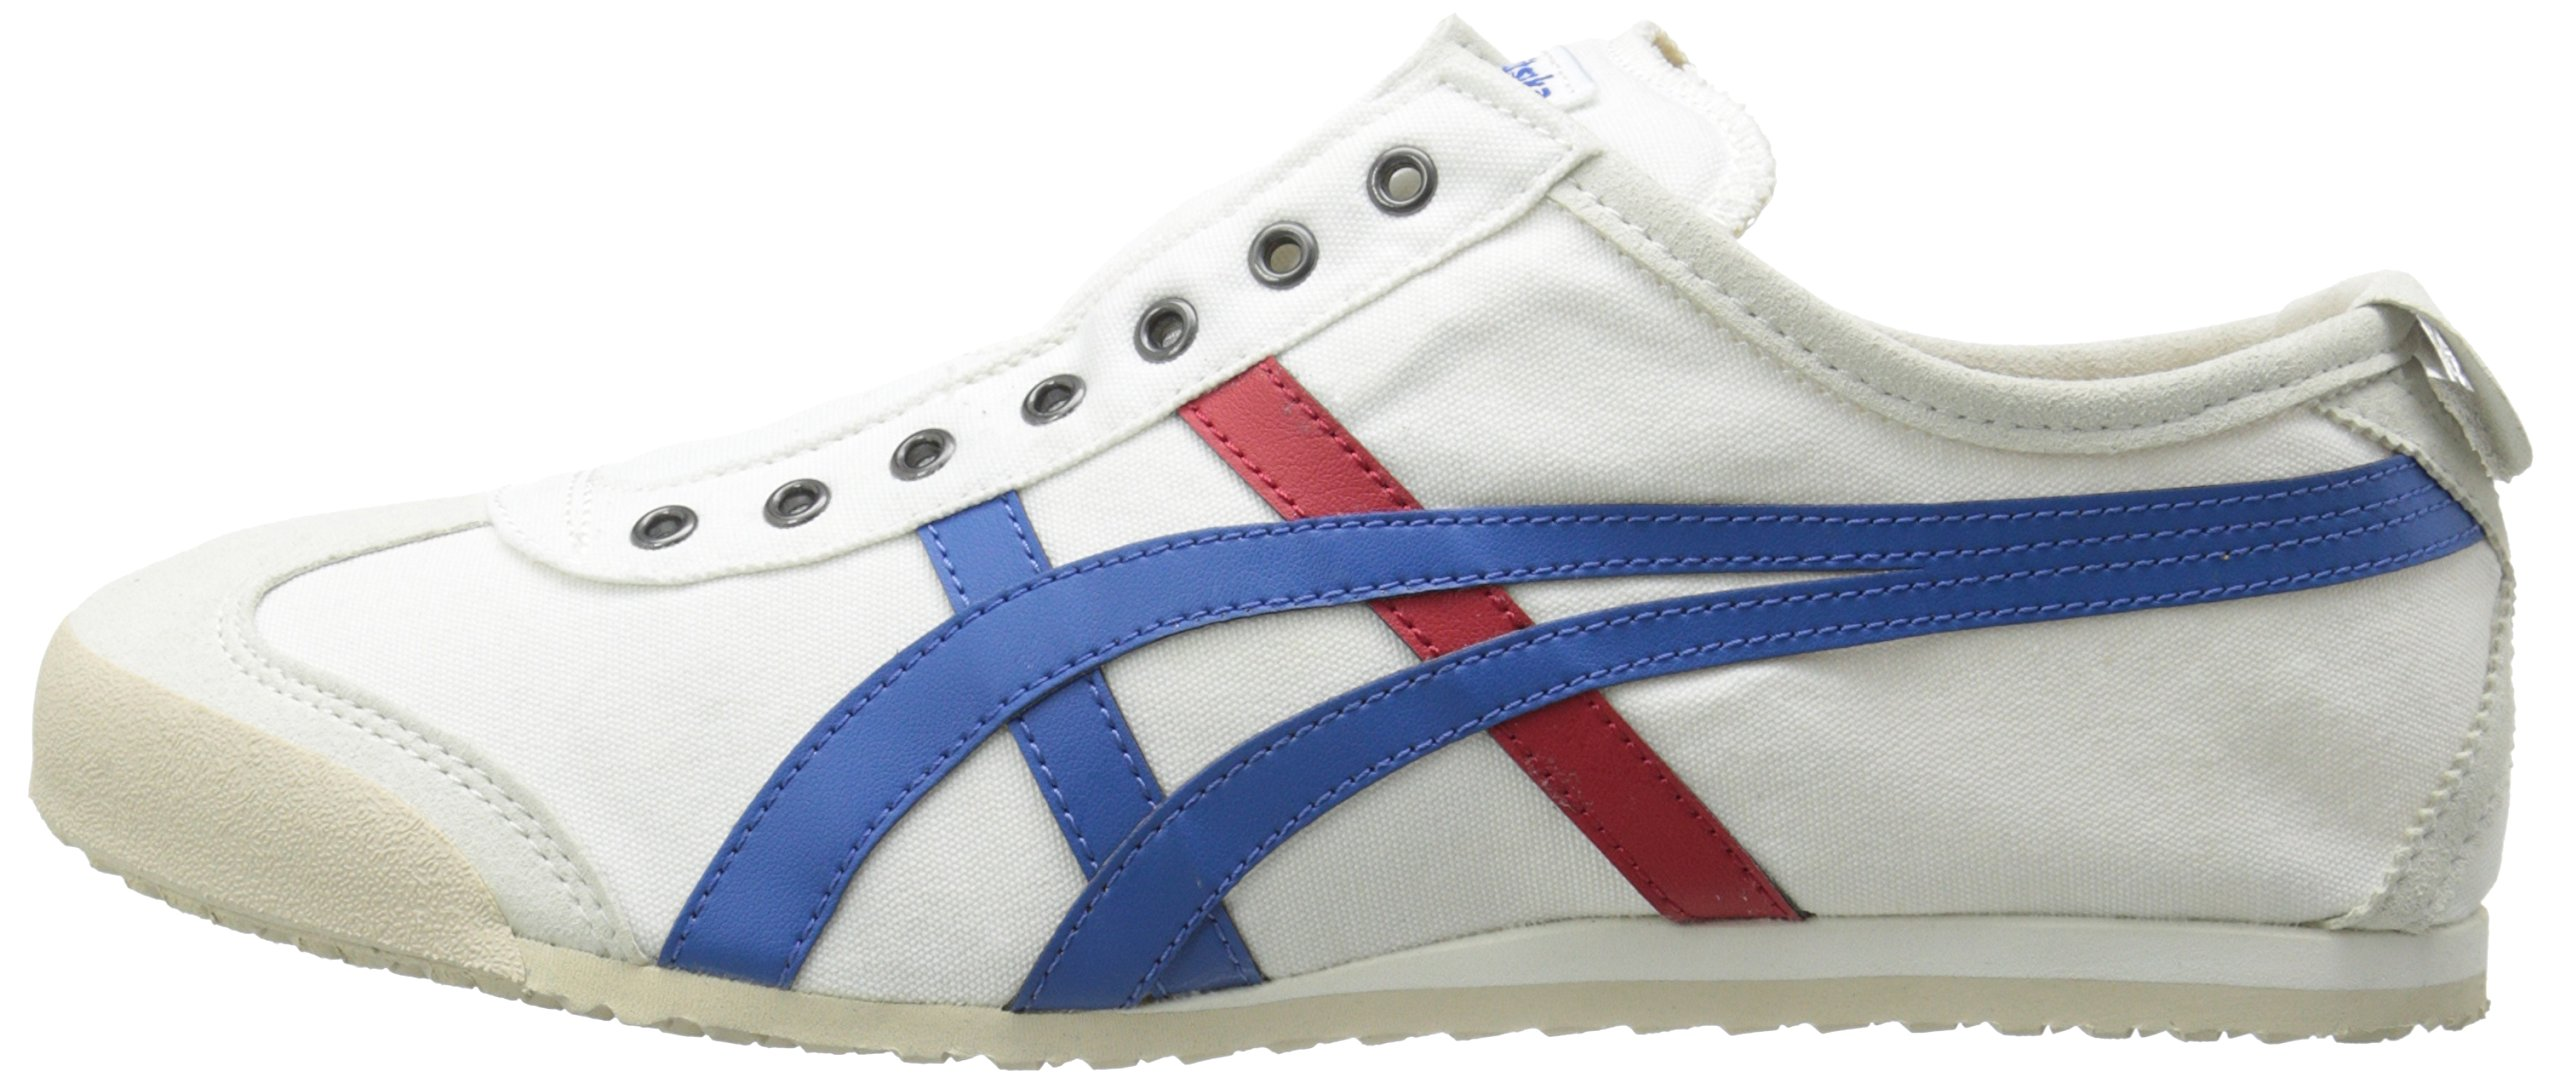 Onitsuka Tiger Unisex Mexico 66 Slip-on Shoes D3K0N, White/Tricolor, 9.5 M US by Onitsuka Tiger (Image #5)